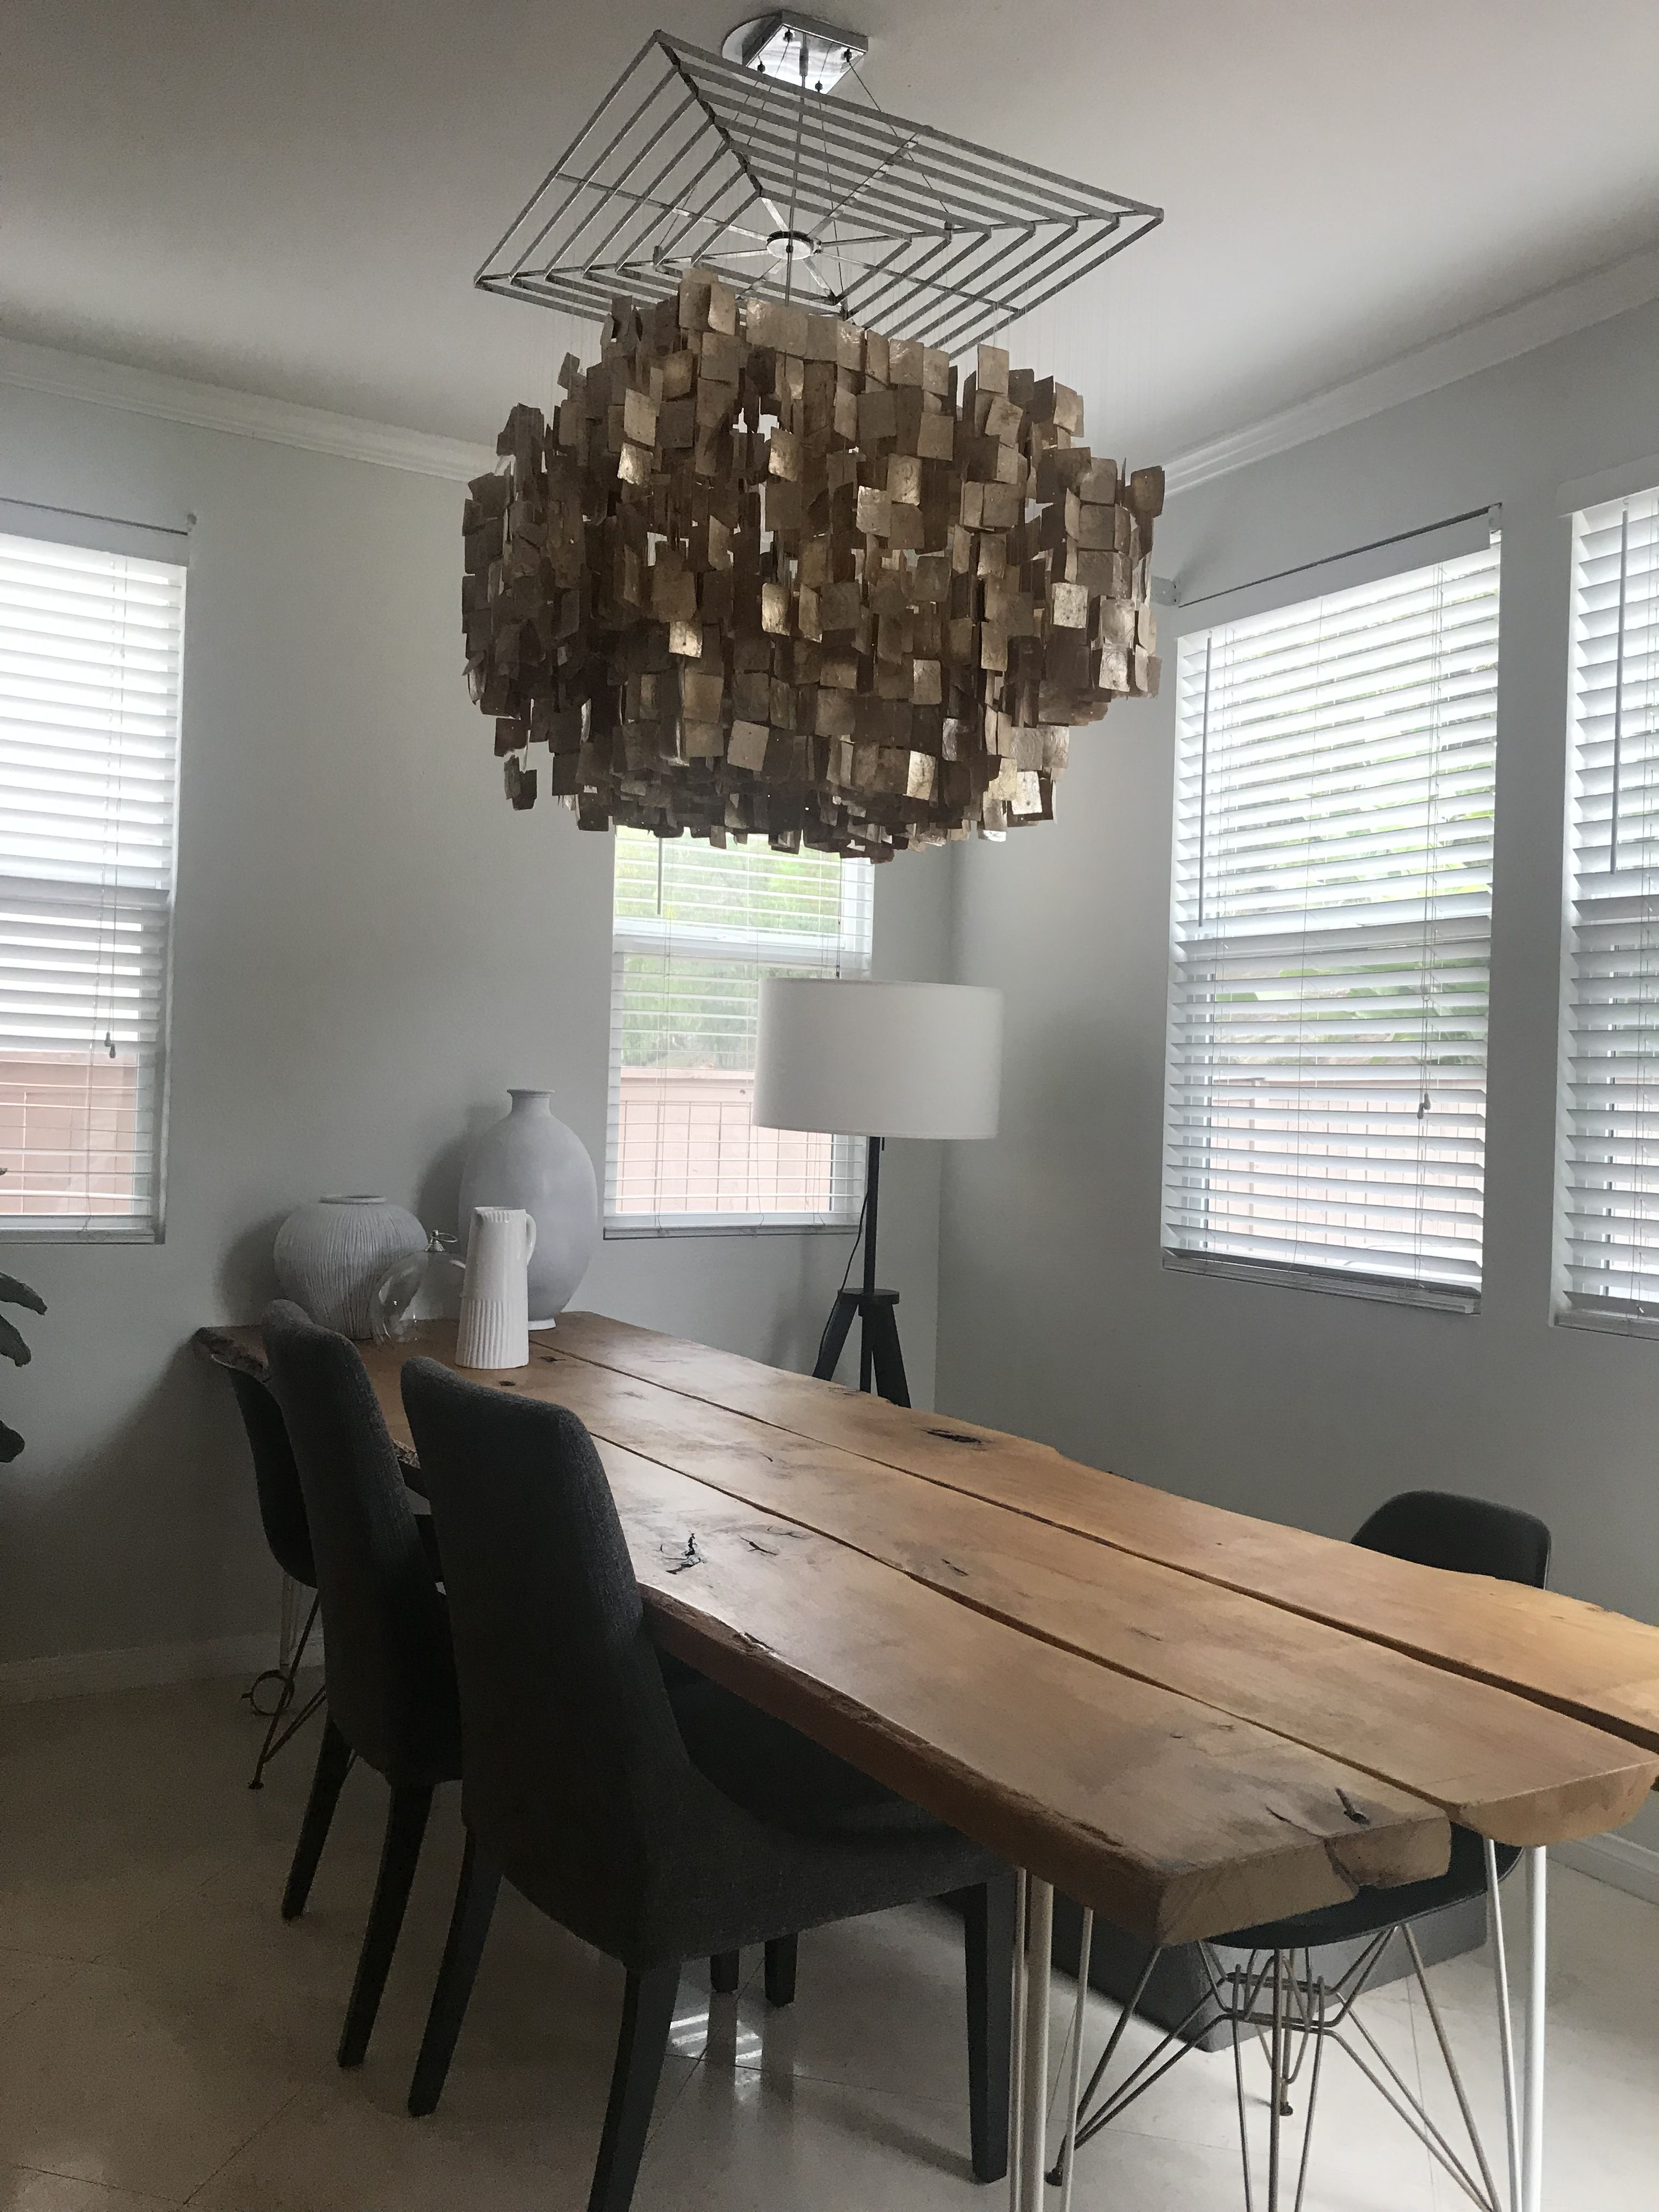 How I made a Dining table and used Ikea pin caster legs